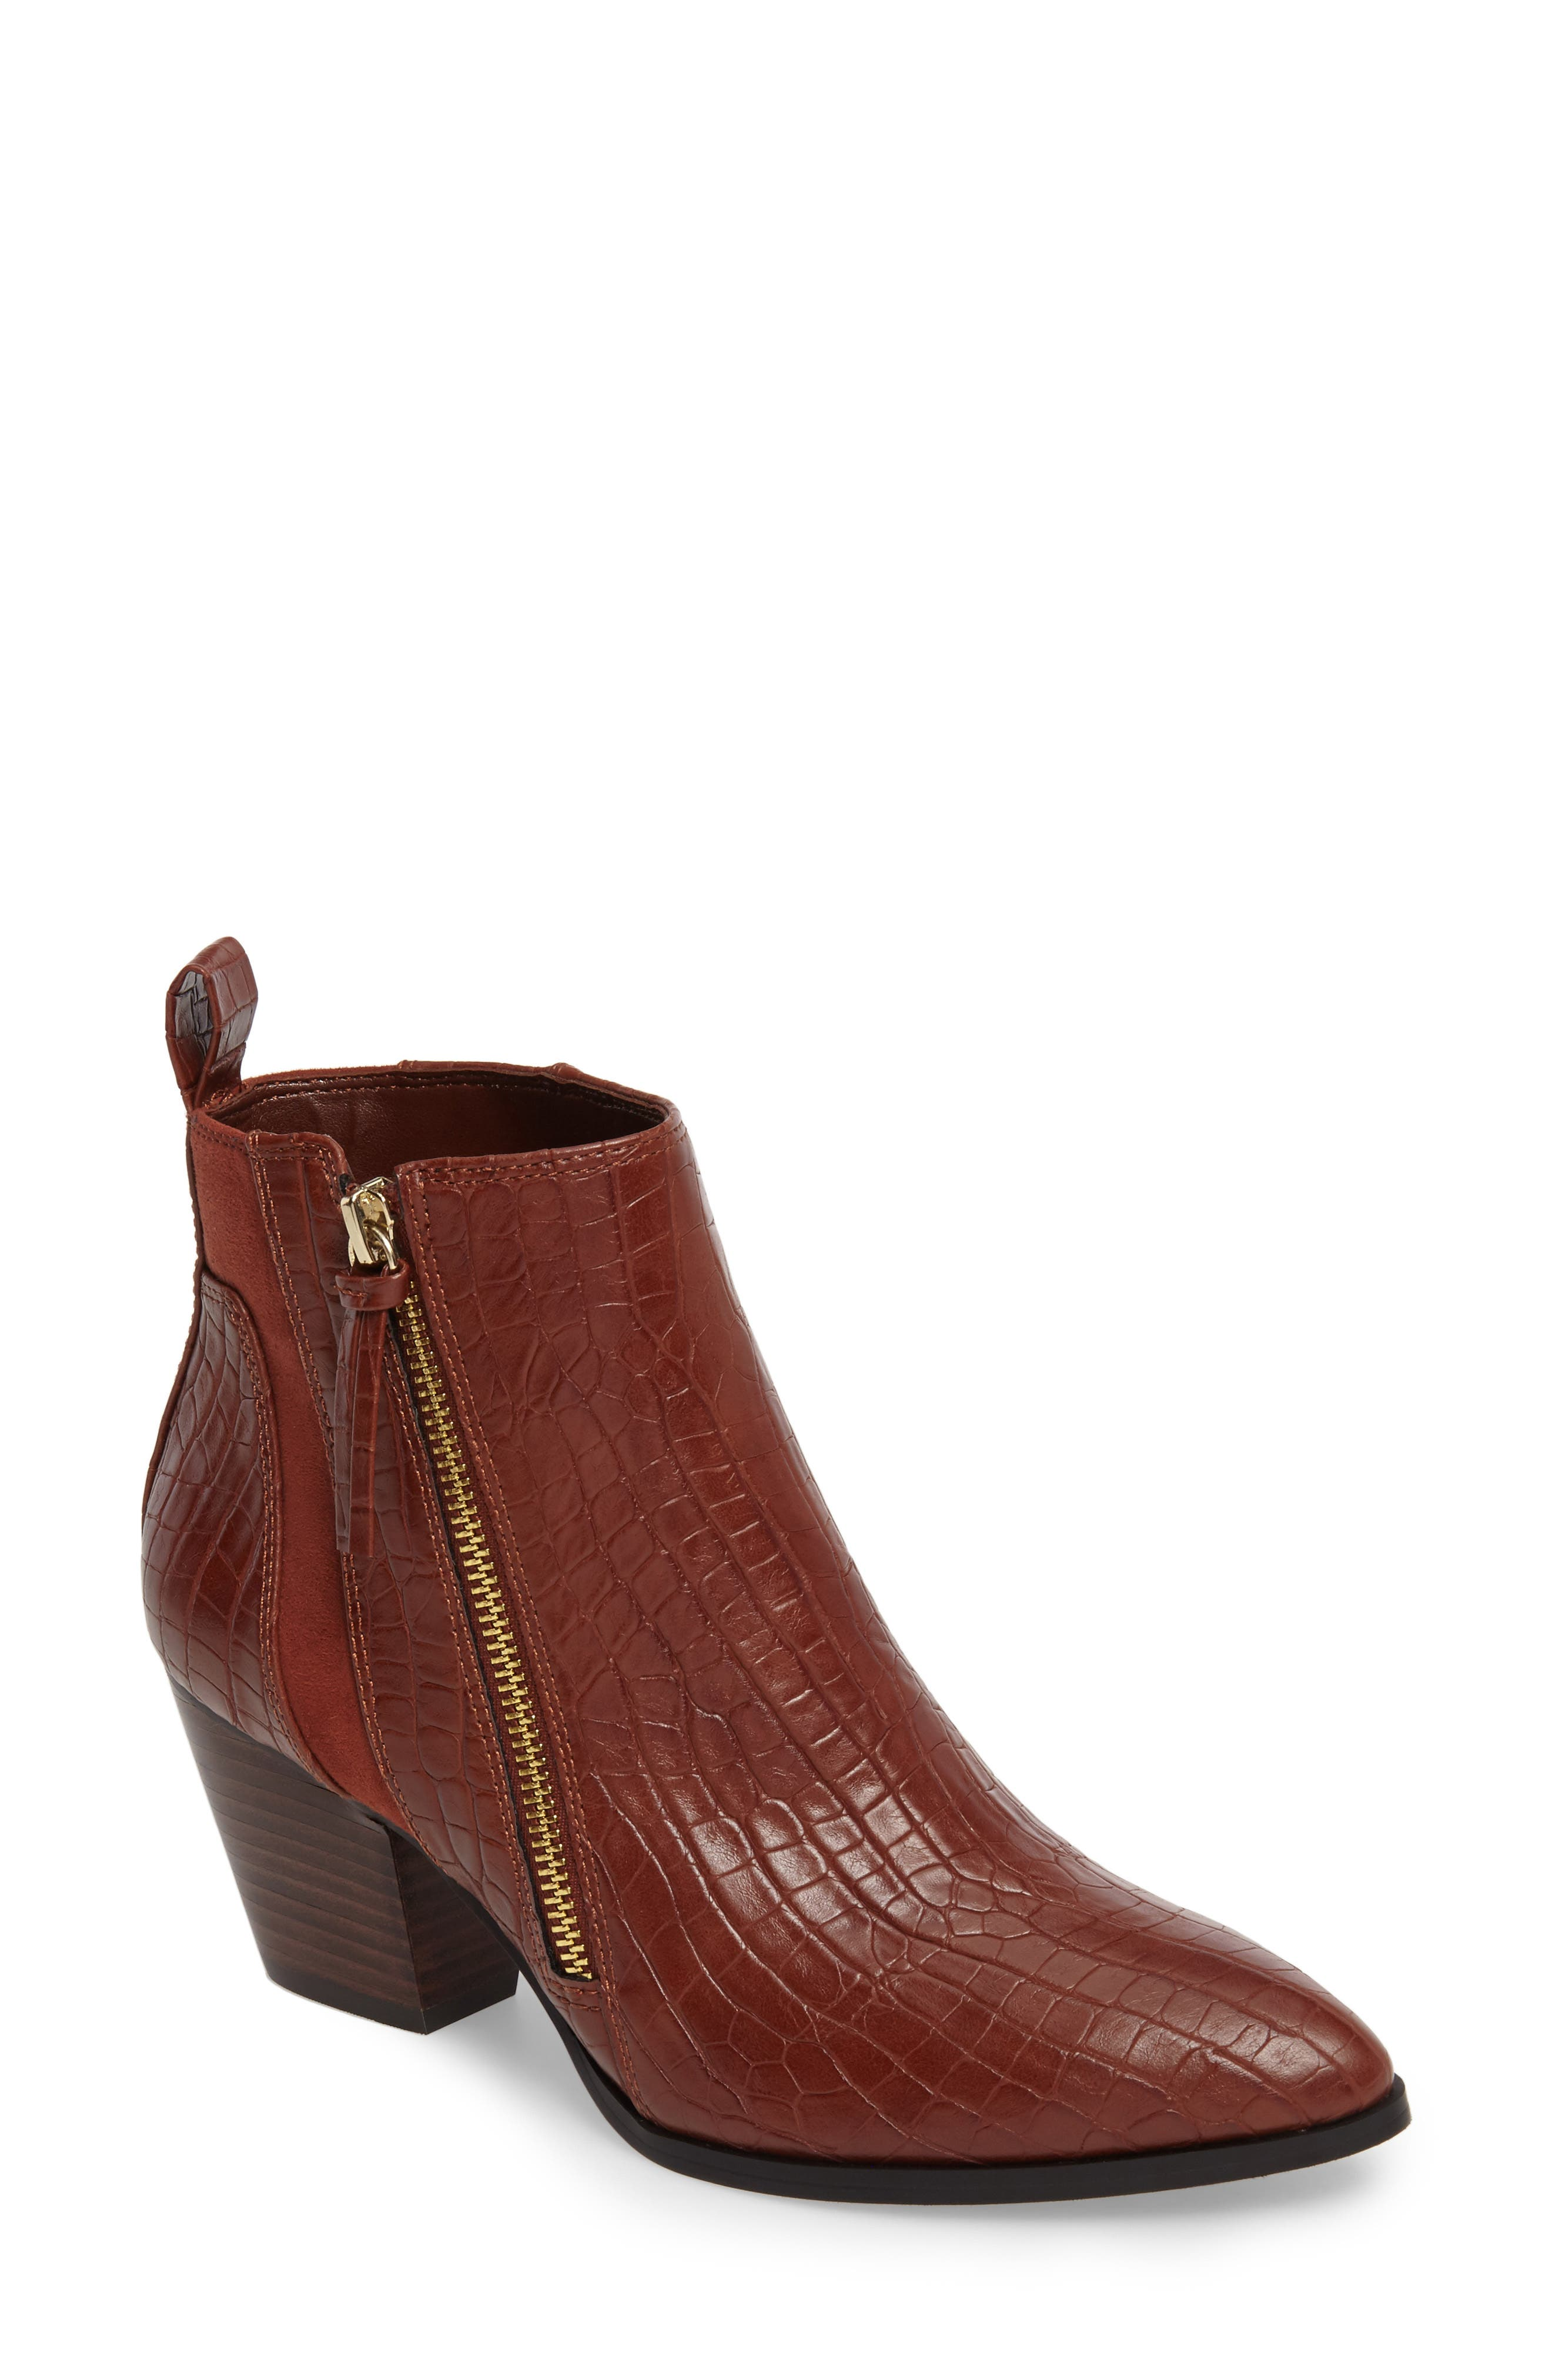 Everst II Pointy Toe Bootie,                             Main thumbnail 1, color,                             Tan Suede